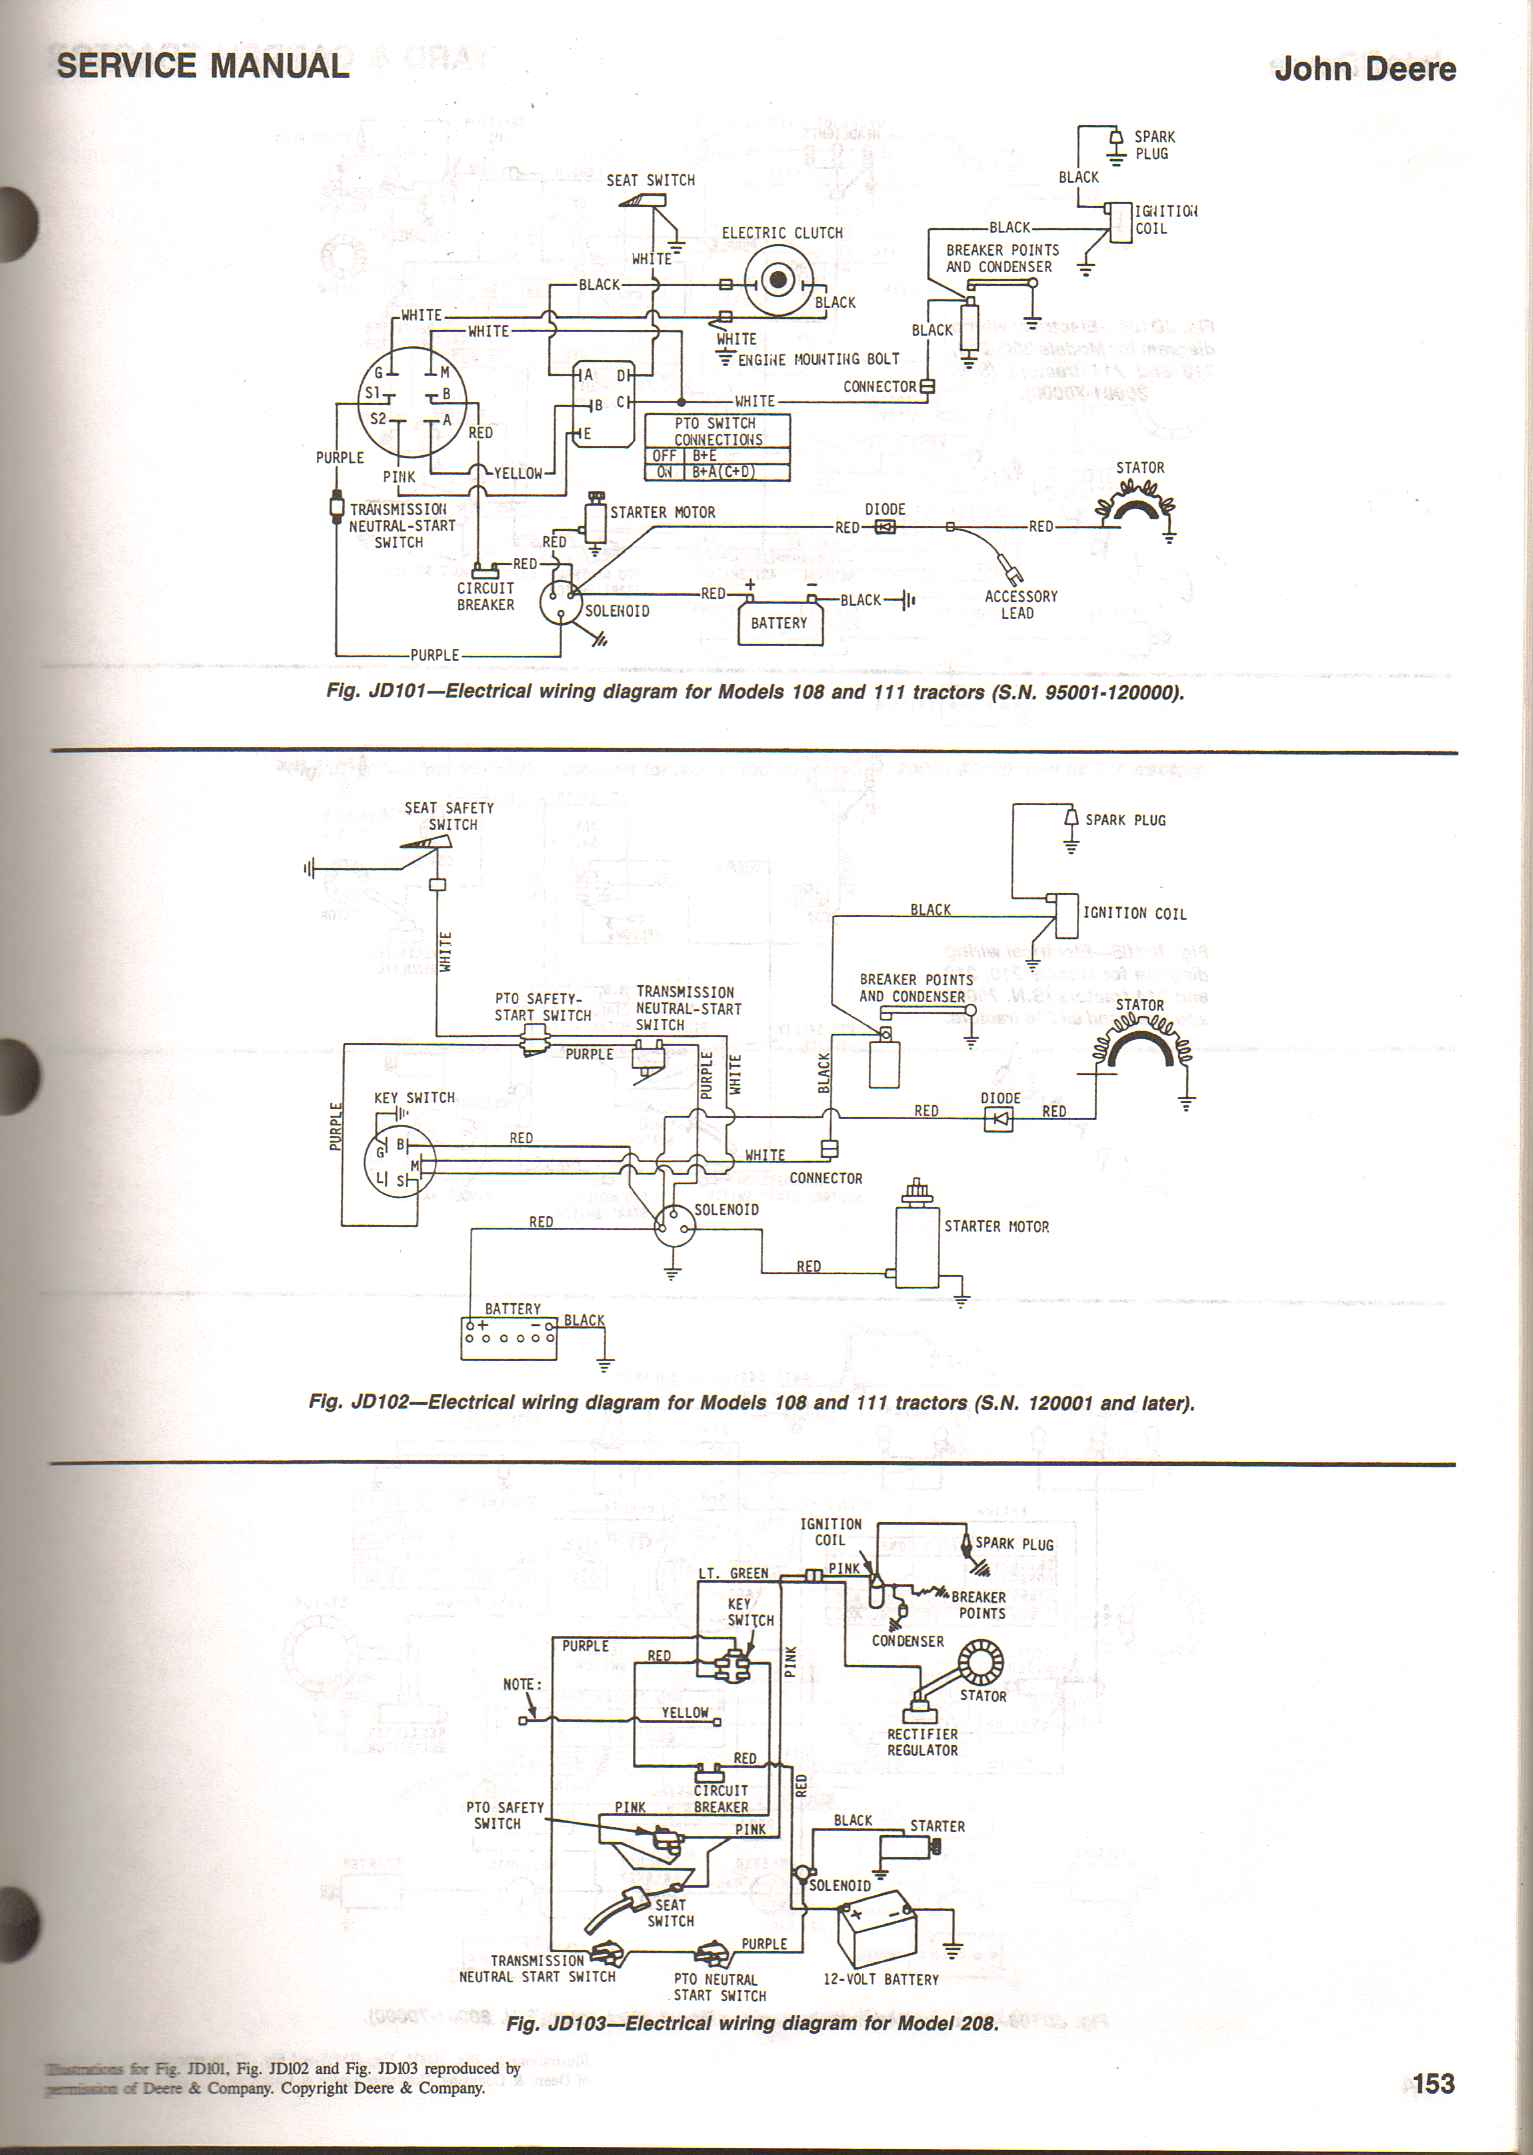 john deere a wiring diagram i have an older deere 111 lawn tractor that will not start ... #6